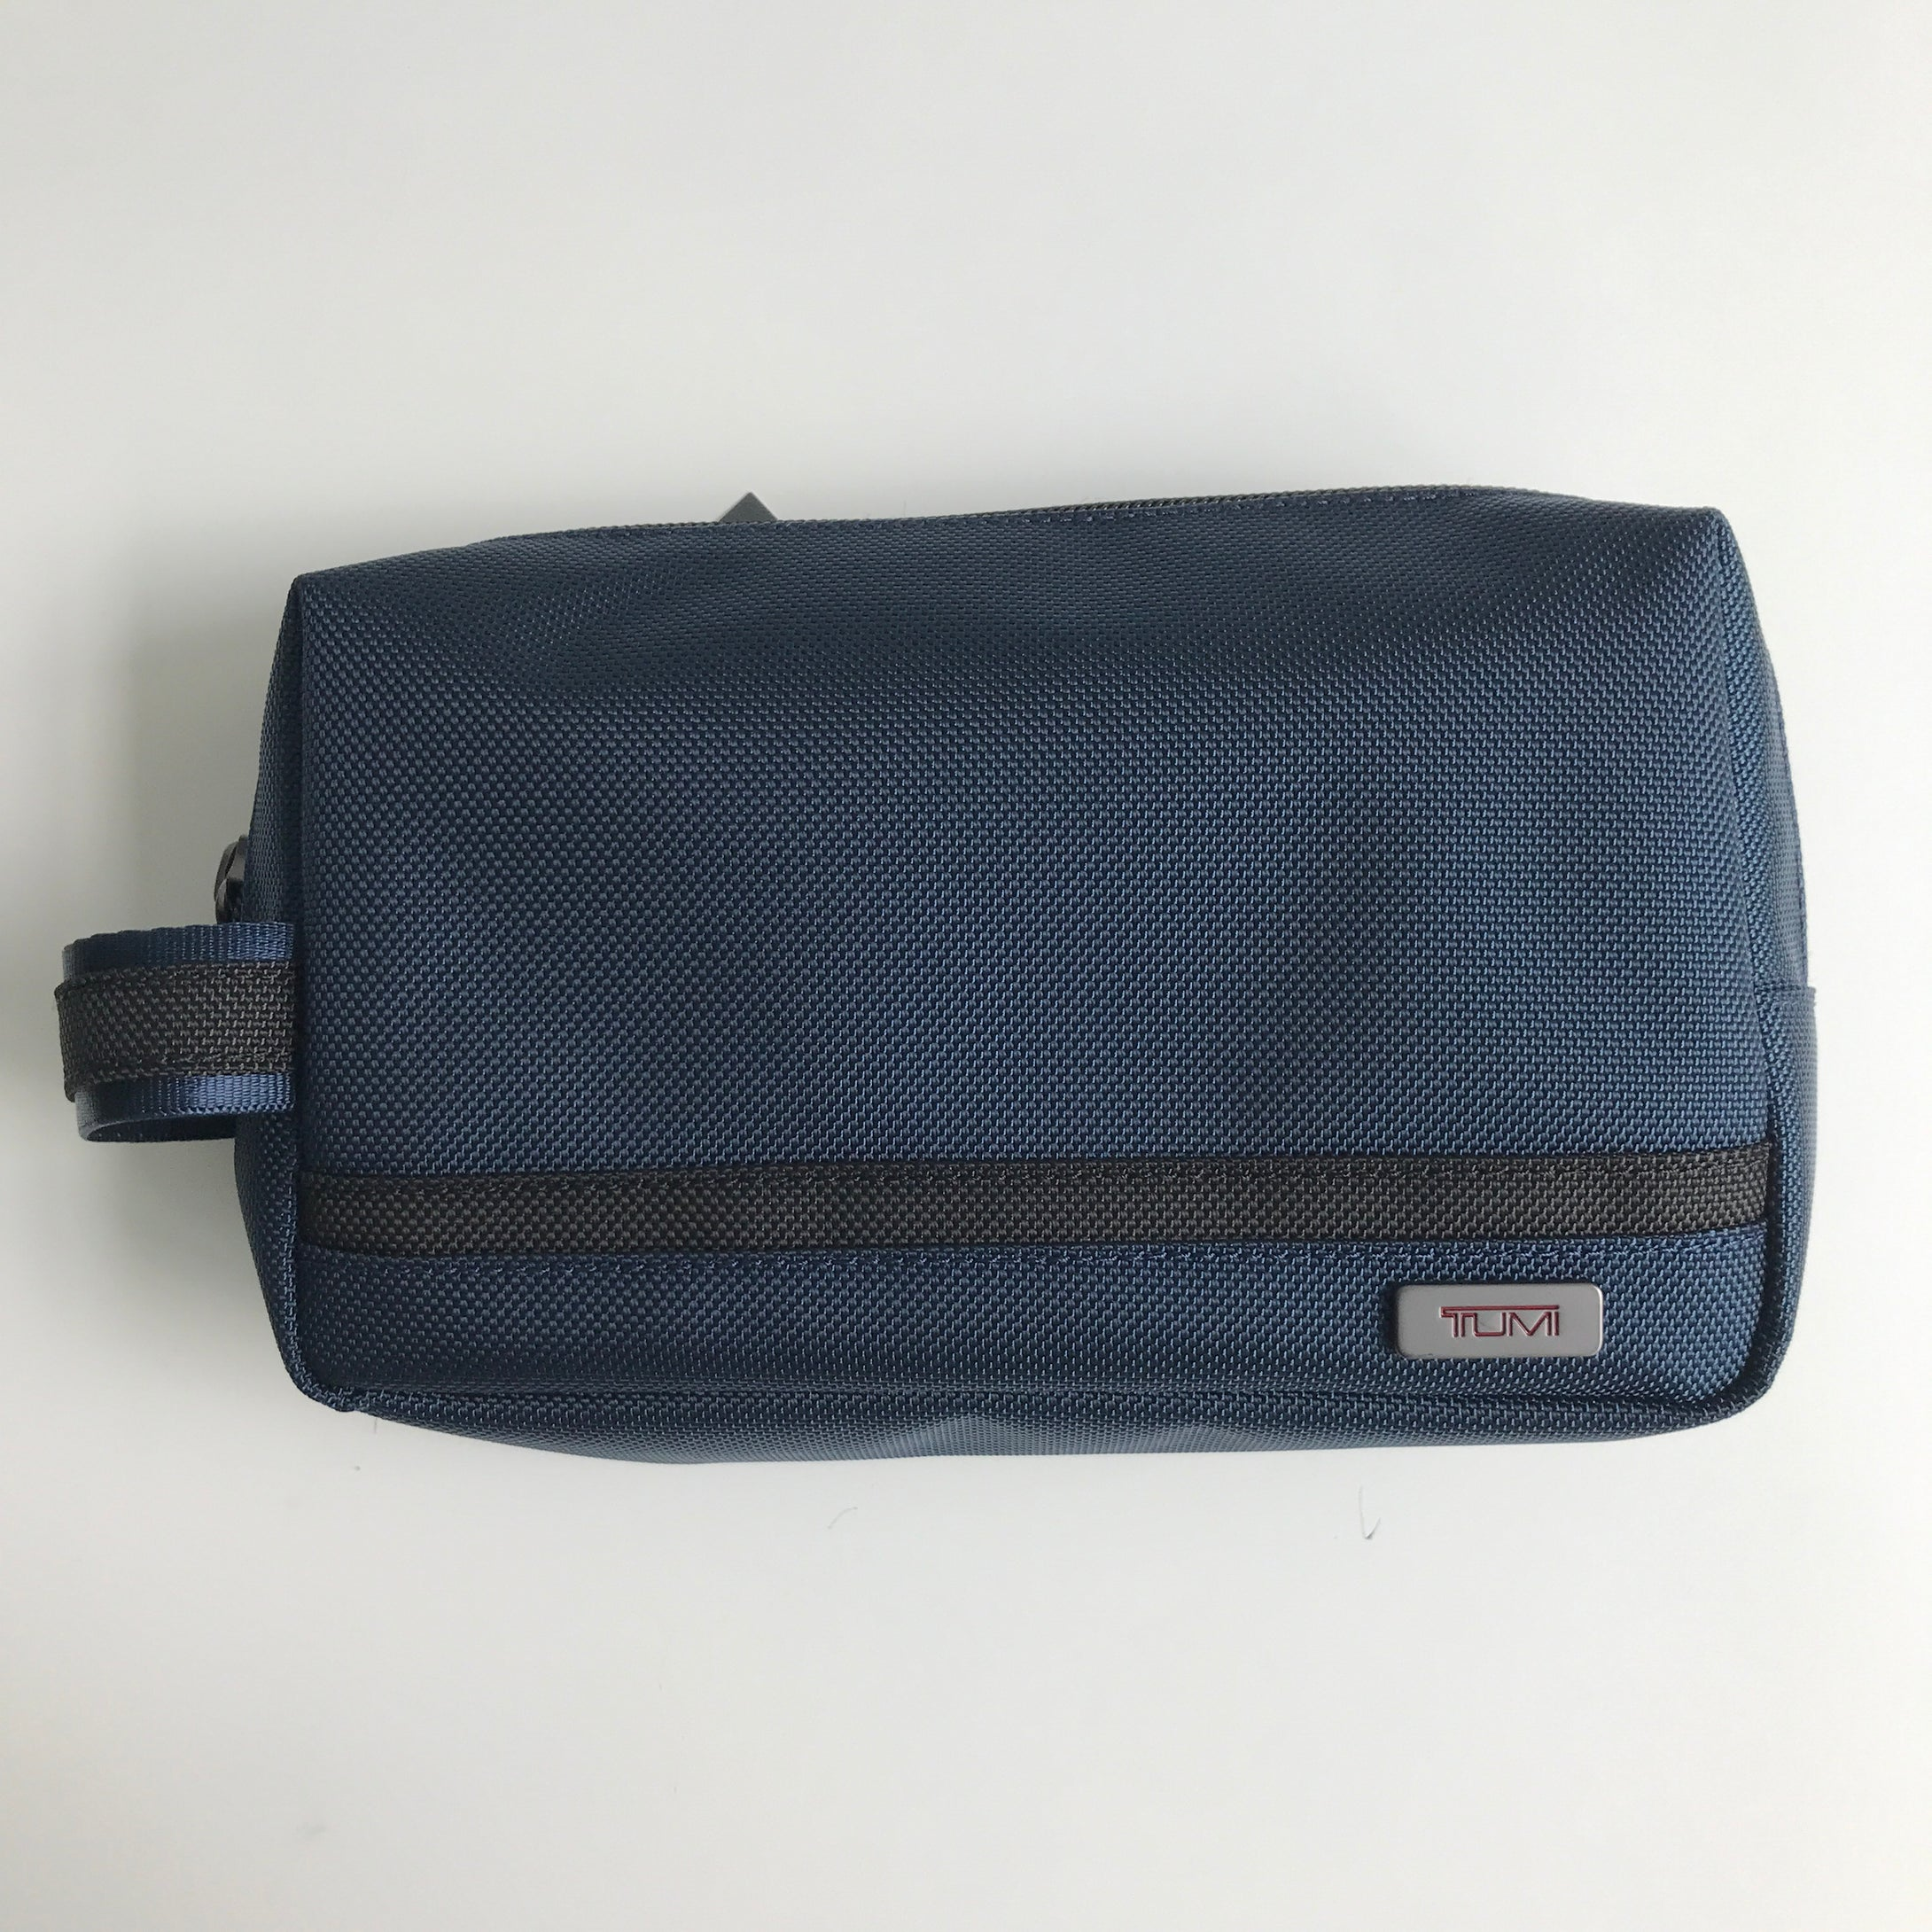 TUMI MEDIUM KIT POUCH (NAVY BLUE)